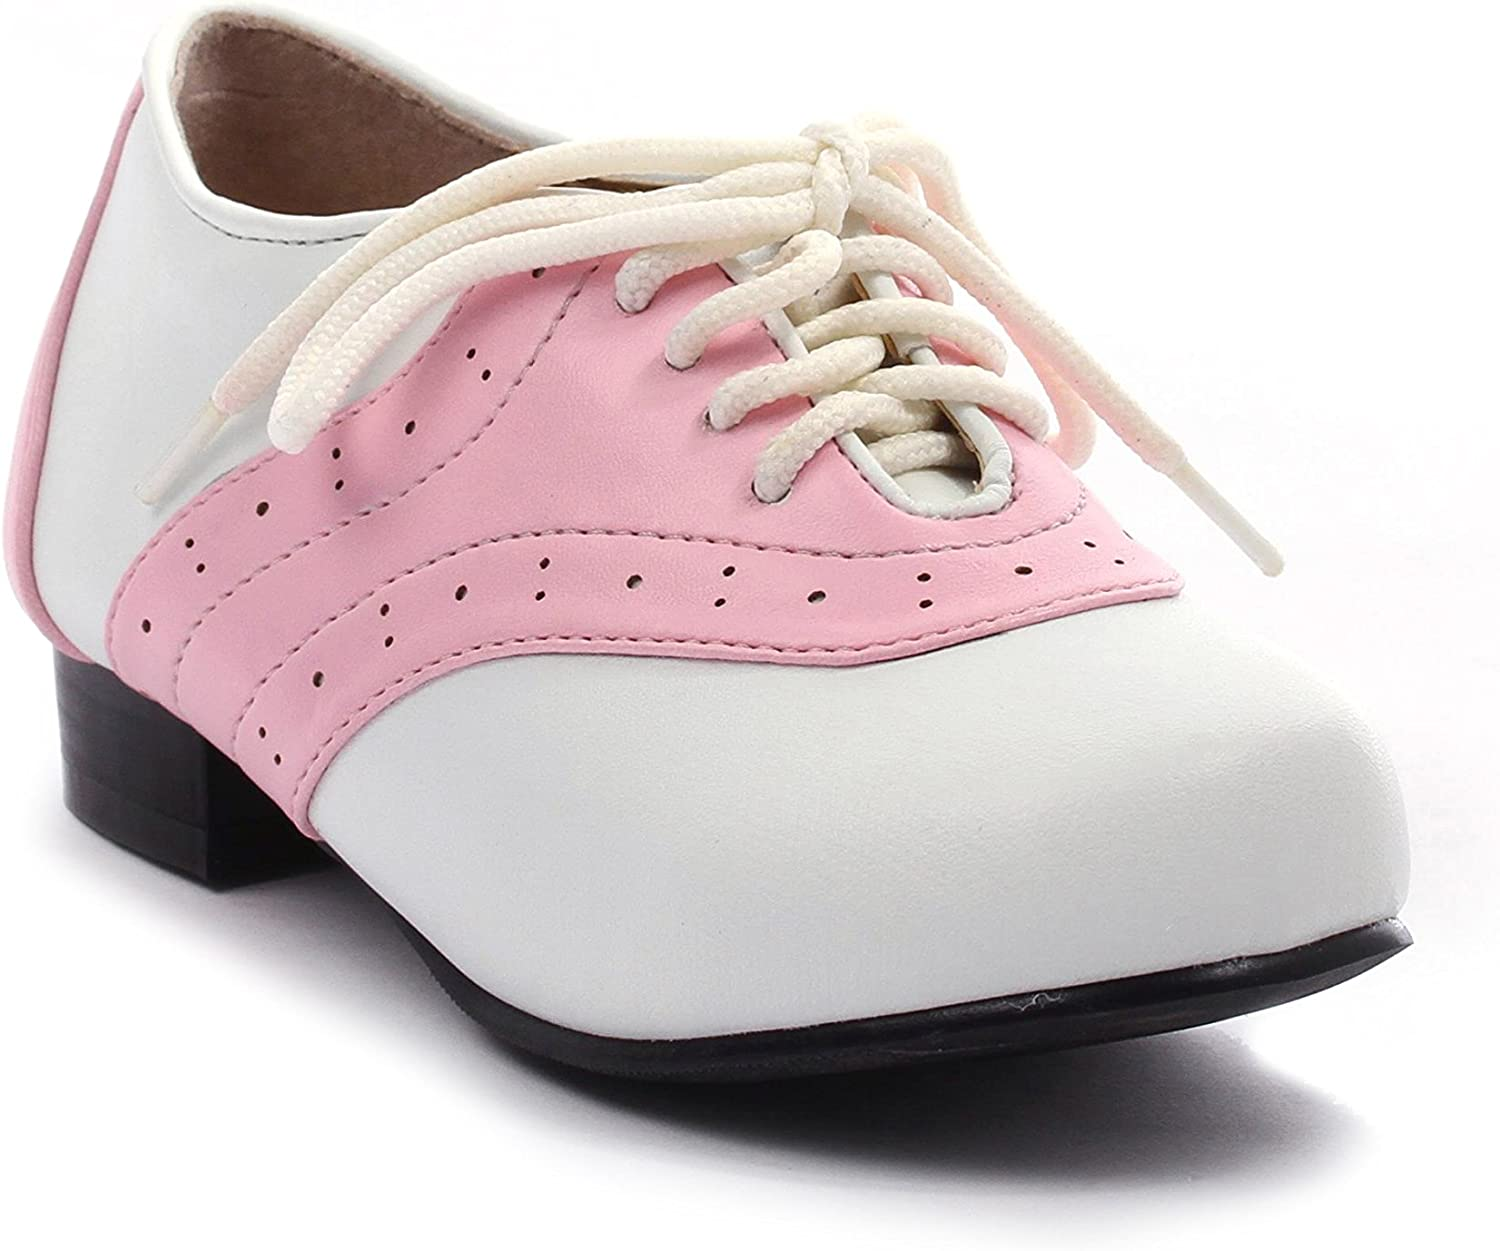 Deluxe Ellie Shoes - Excellence Childrens Pink White Shoe and Saddle